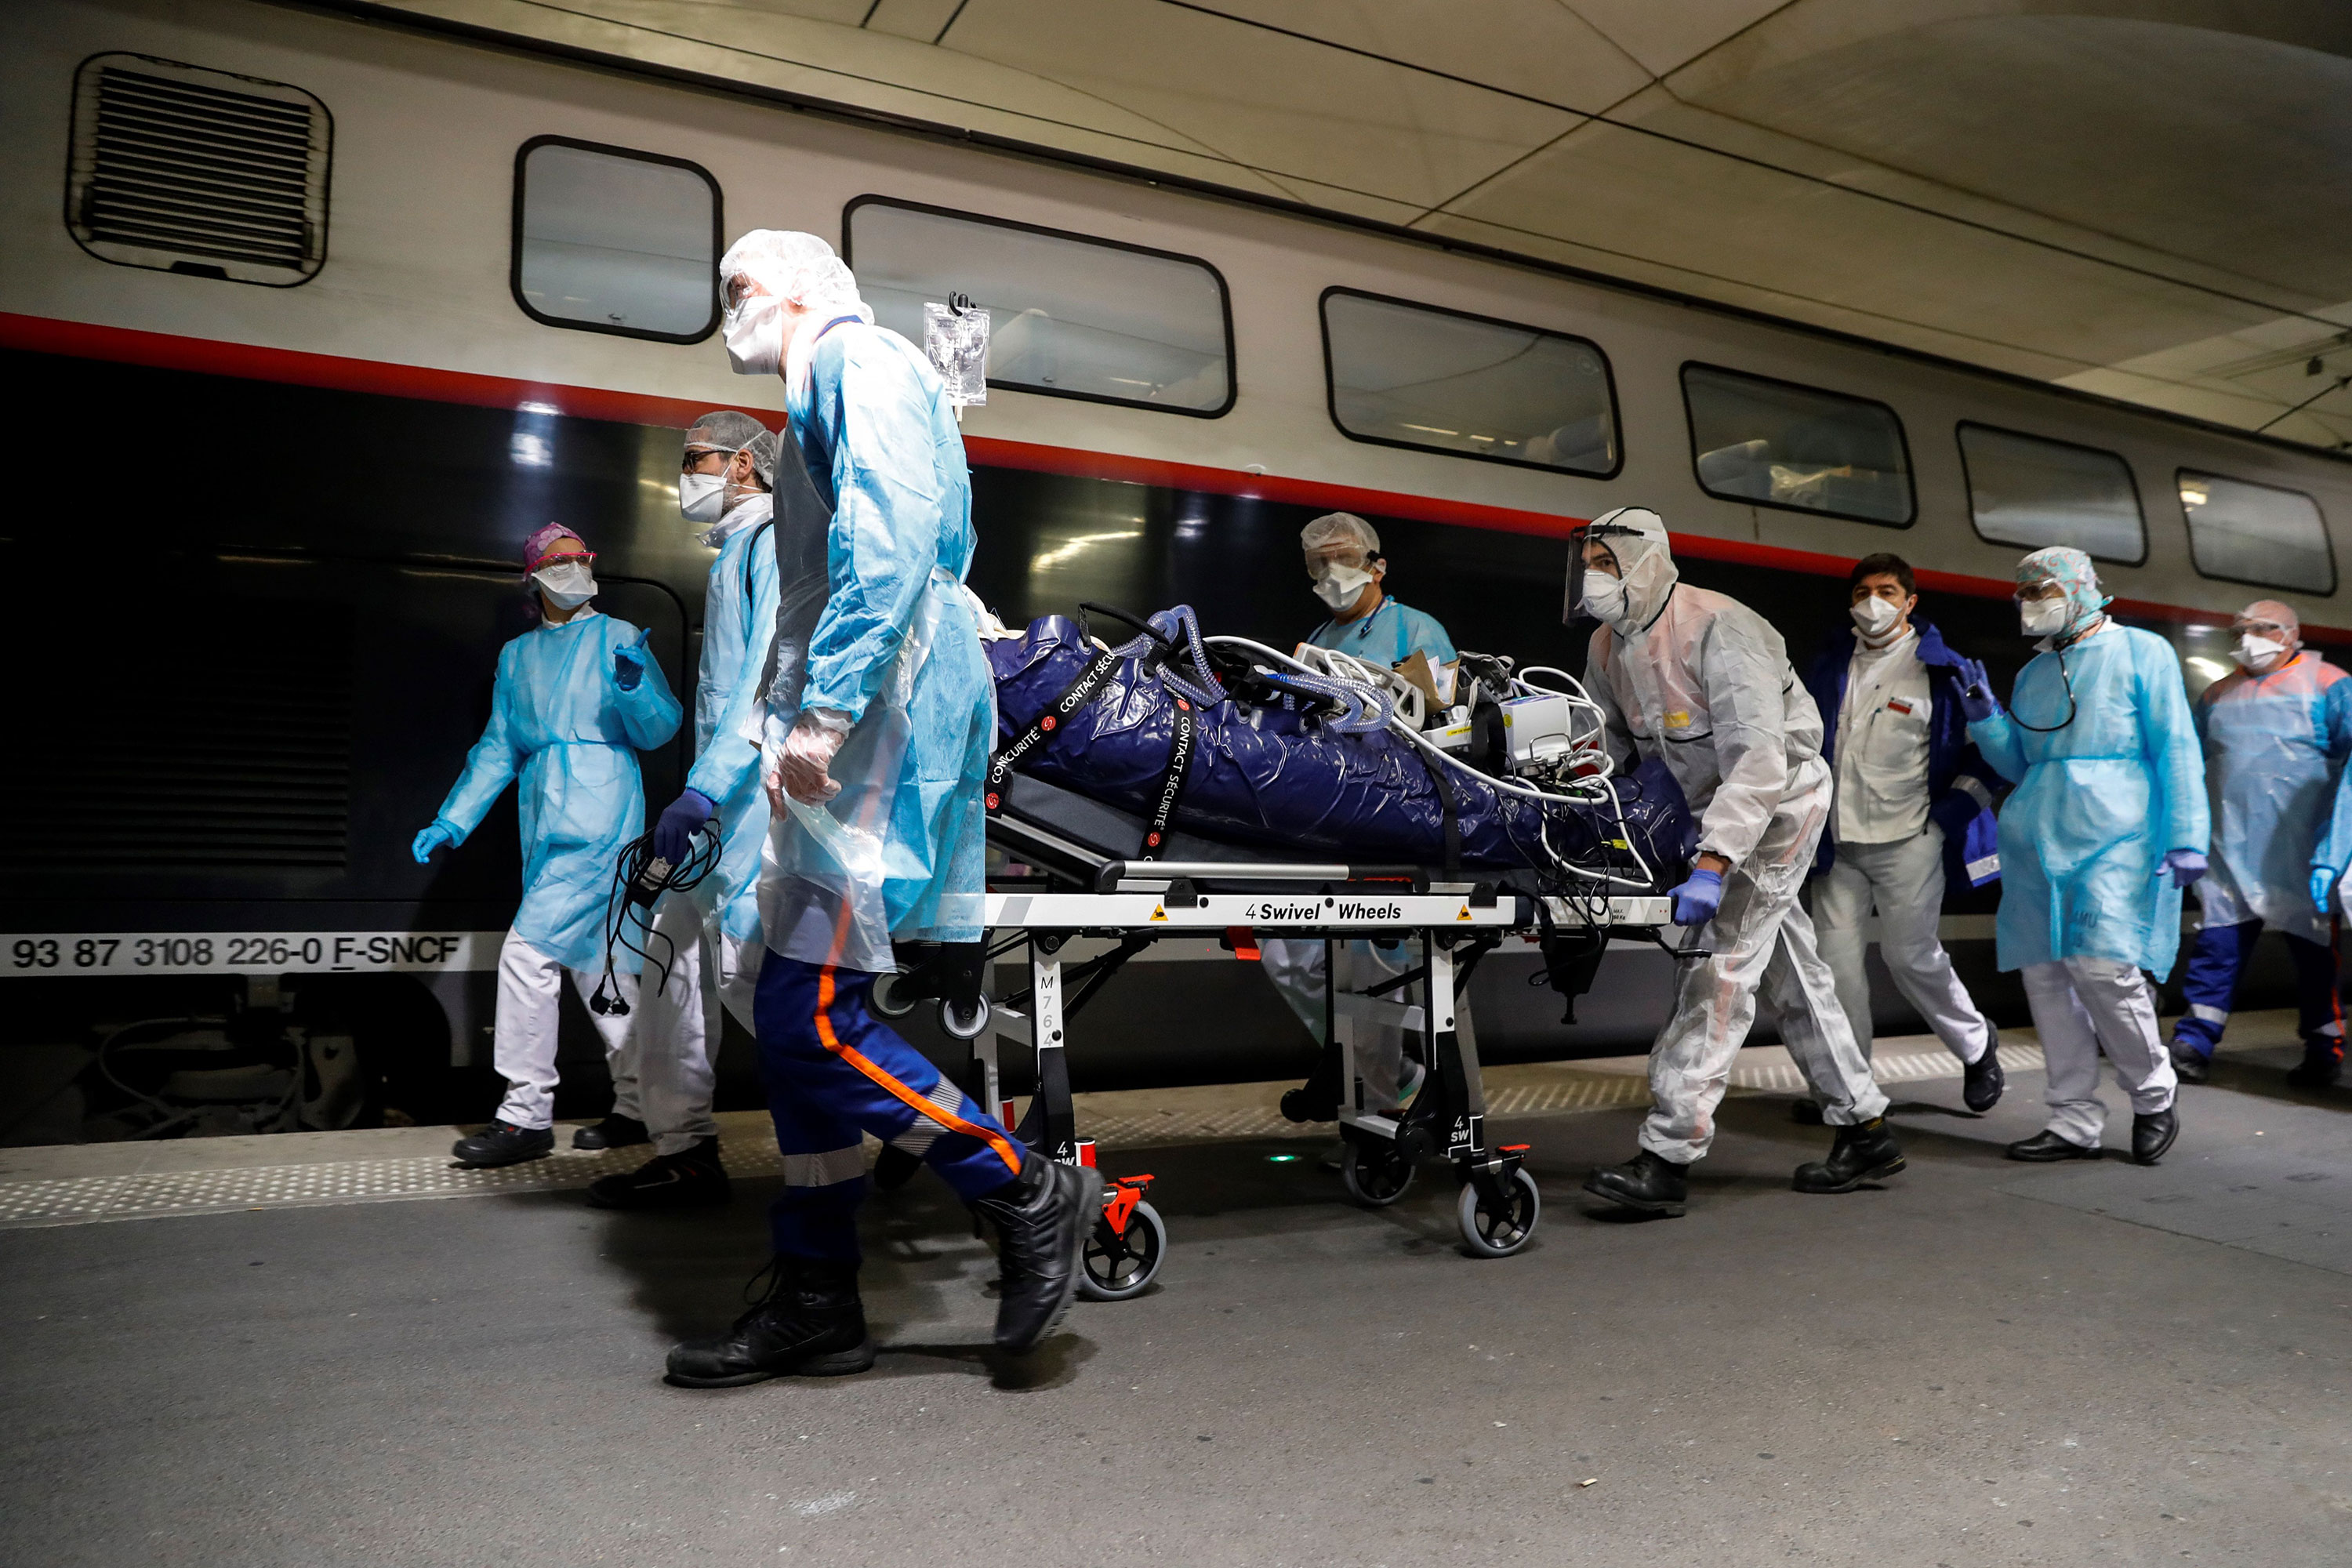 Medical staff wheel a patient to a high speed train at the Gare d'Austerlitz train station in Paris on April 1 to be evacuated to other hospitals in western France.